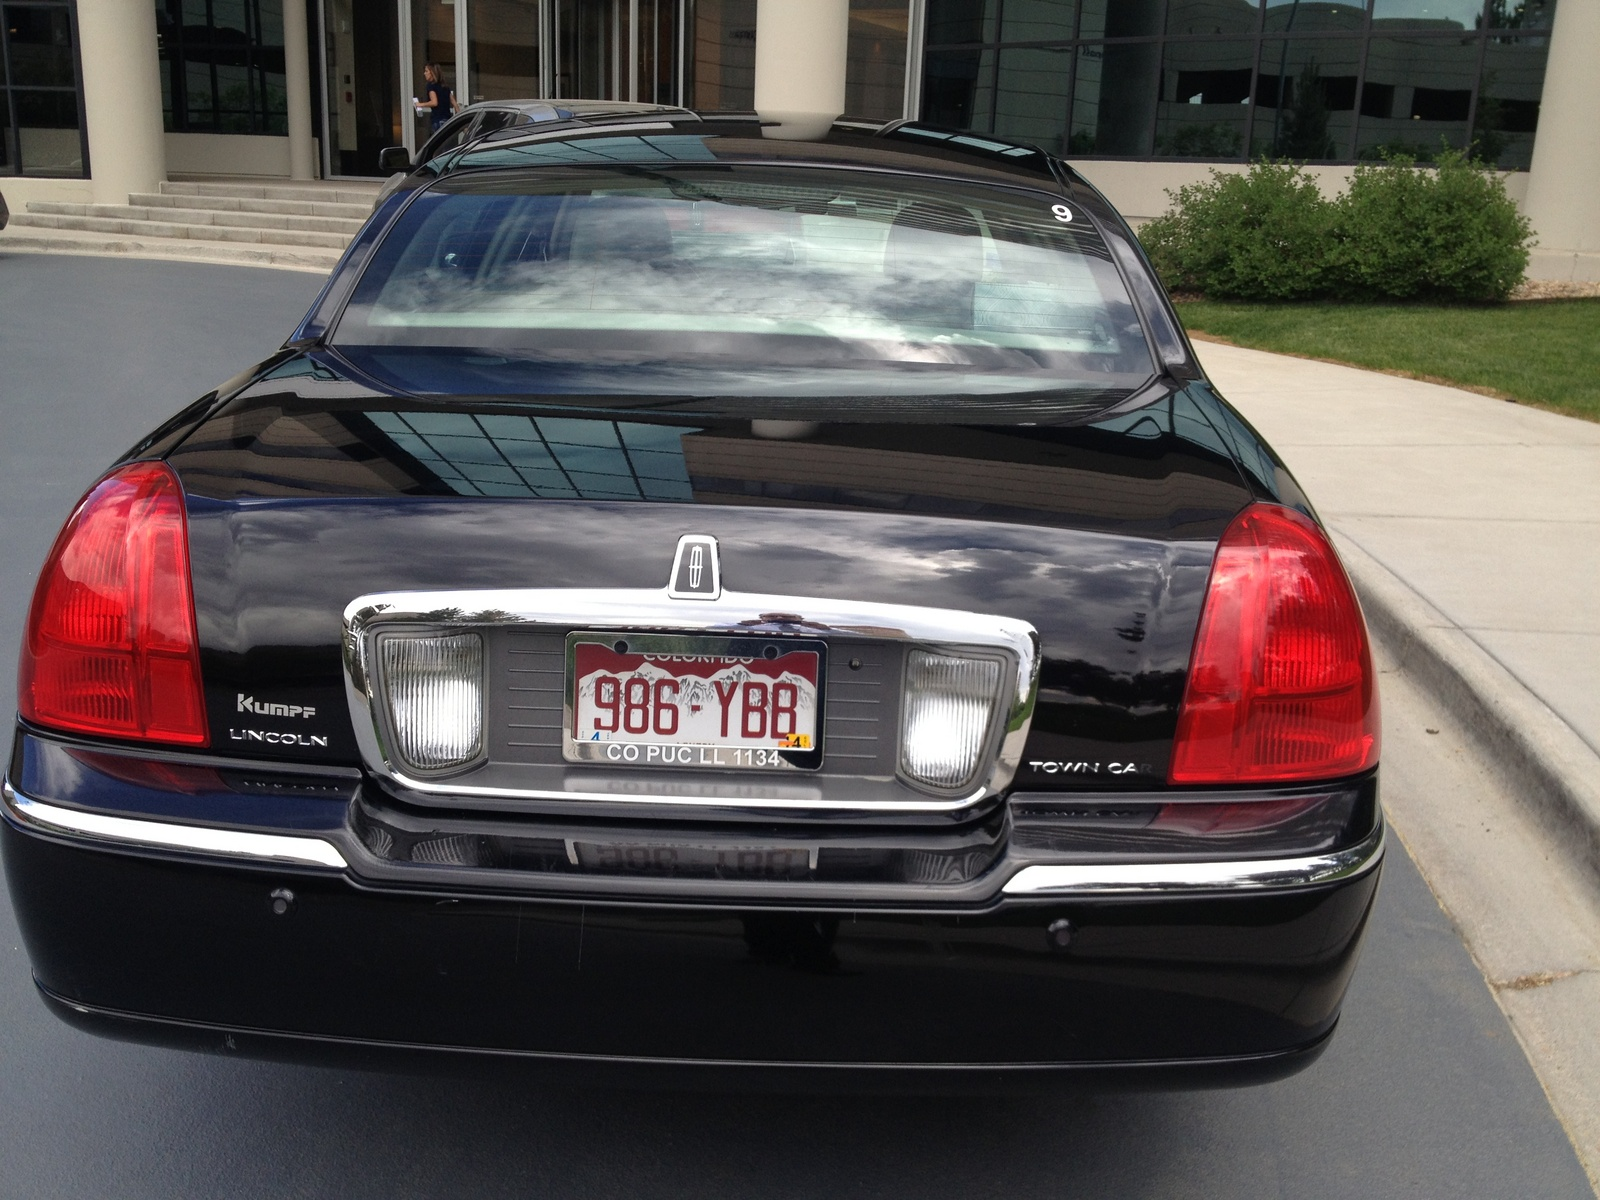 http://static.cargurus.com/images/site/2013/07/13/13/58/2003_lincoln_town_car_cartier-pic-6273349802762541771.jpeg